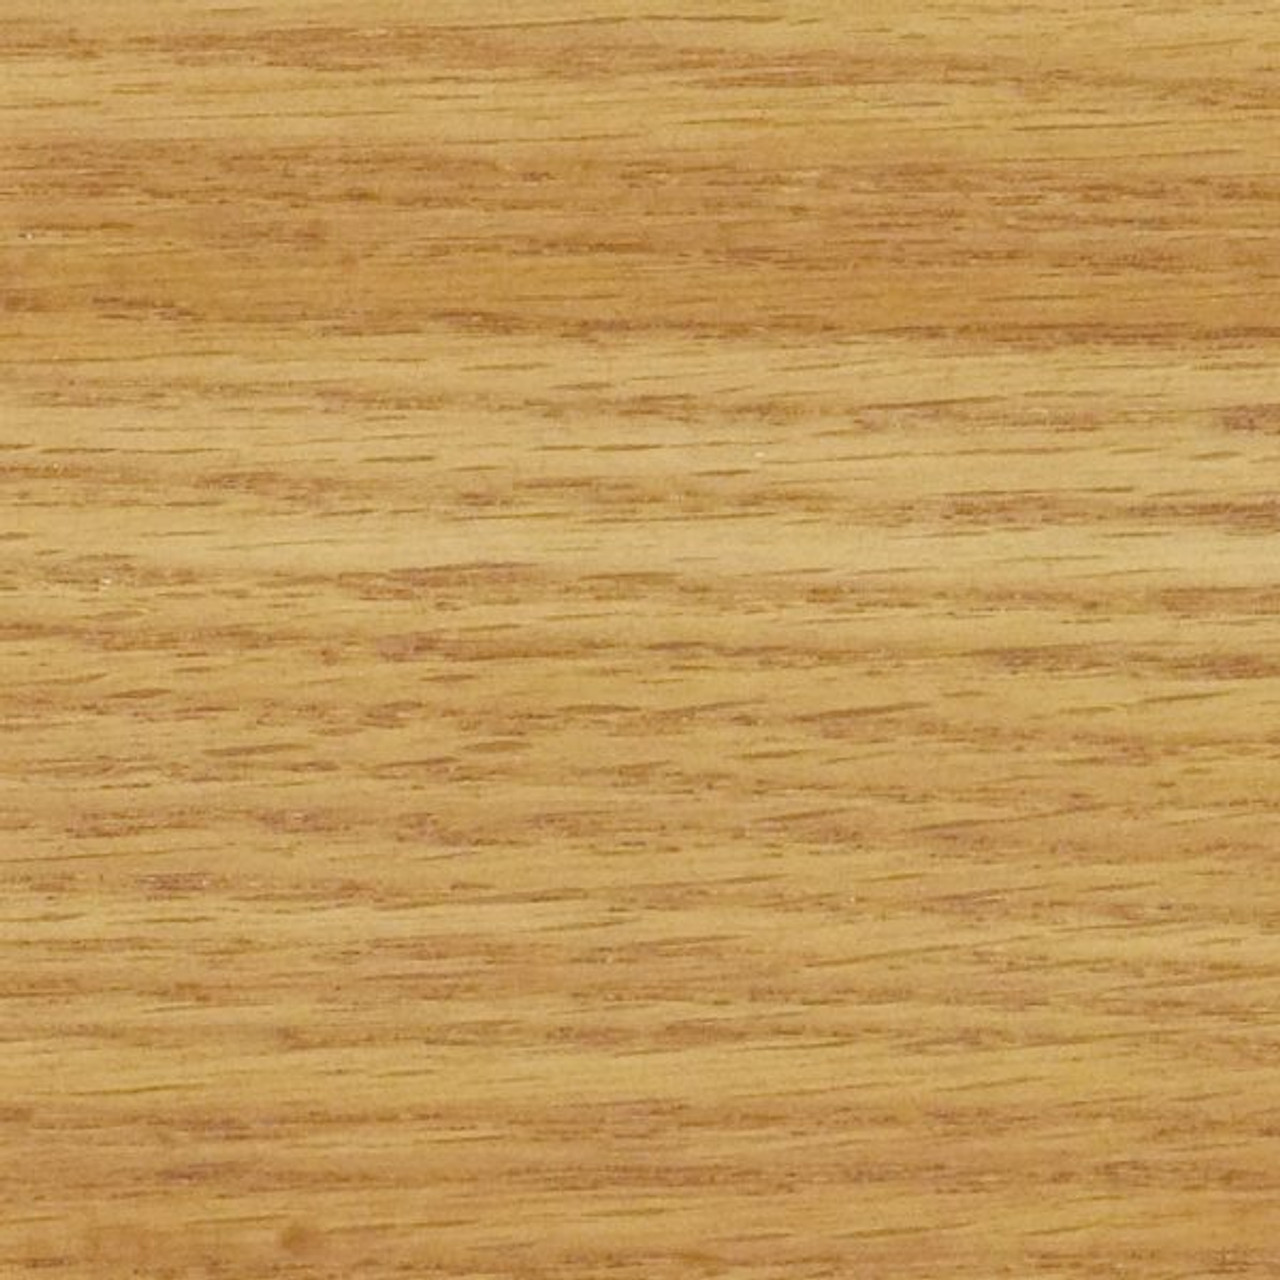 Saman sesame stain on a piece of wood.